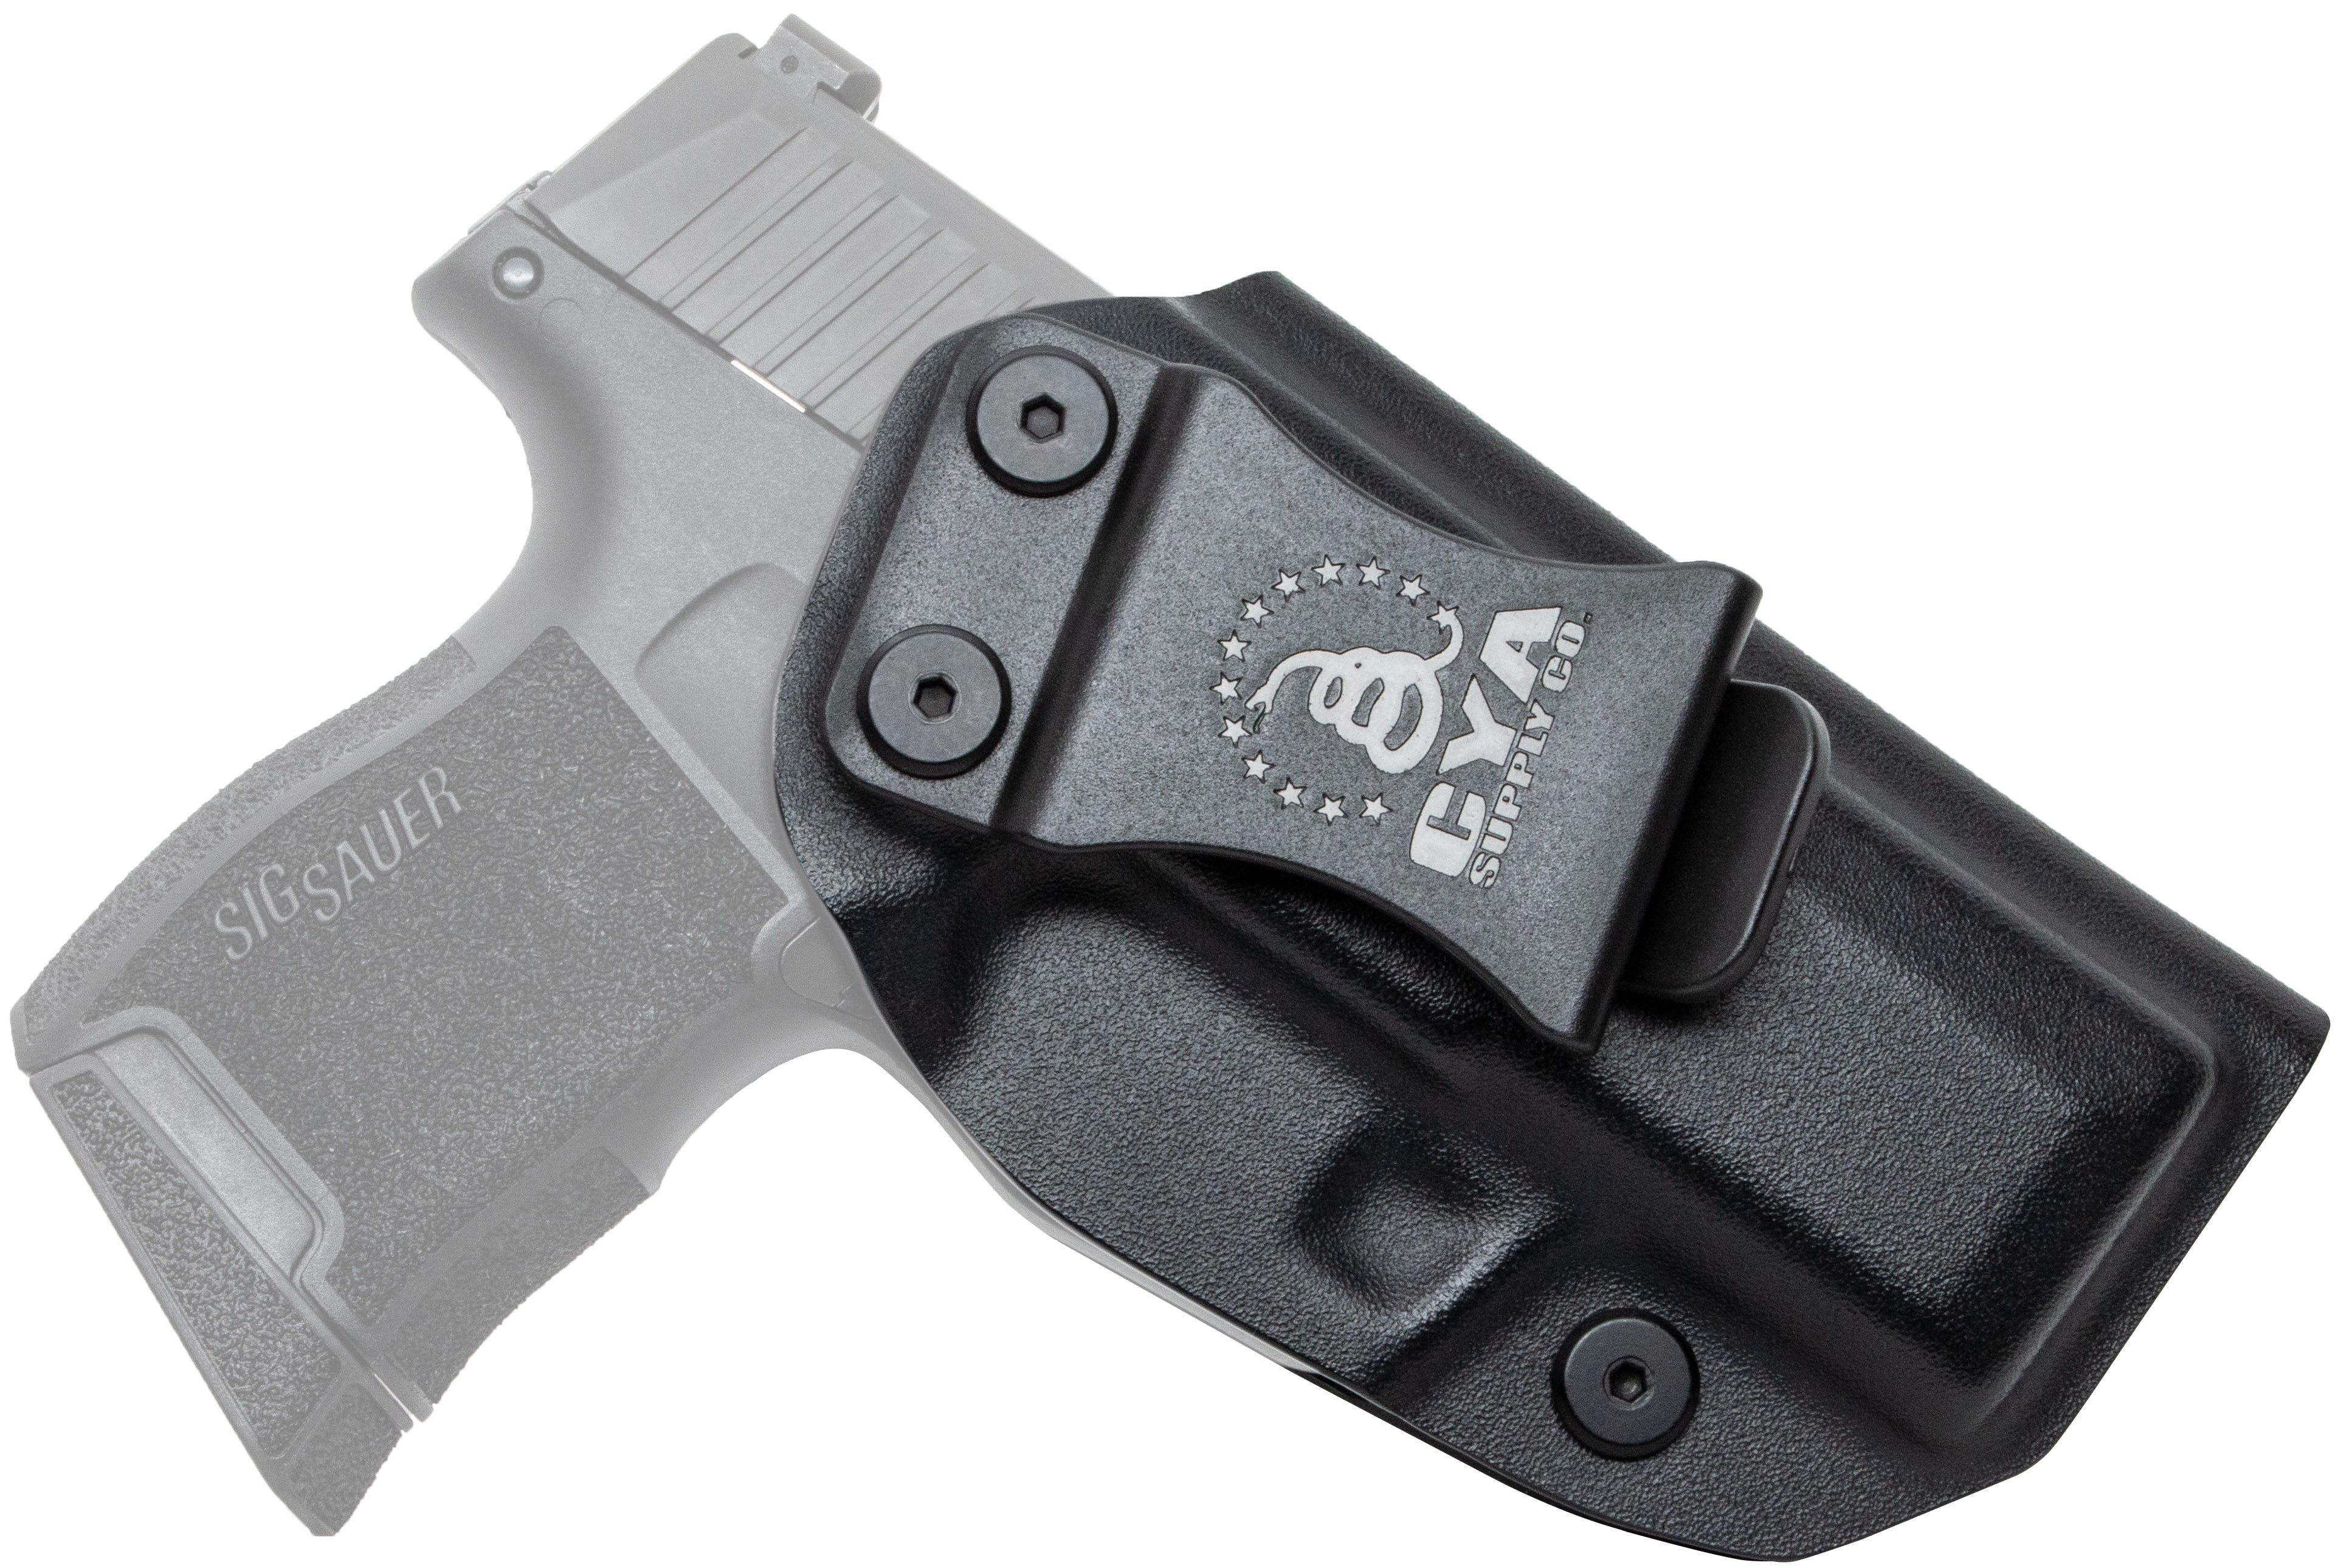 Sig Sauer P365 IWB Holster For Concealed Carry